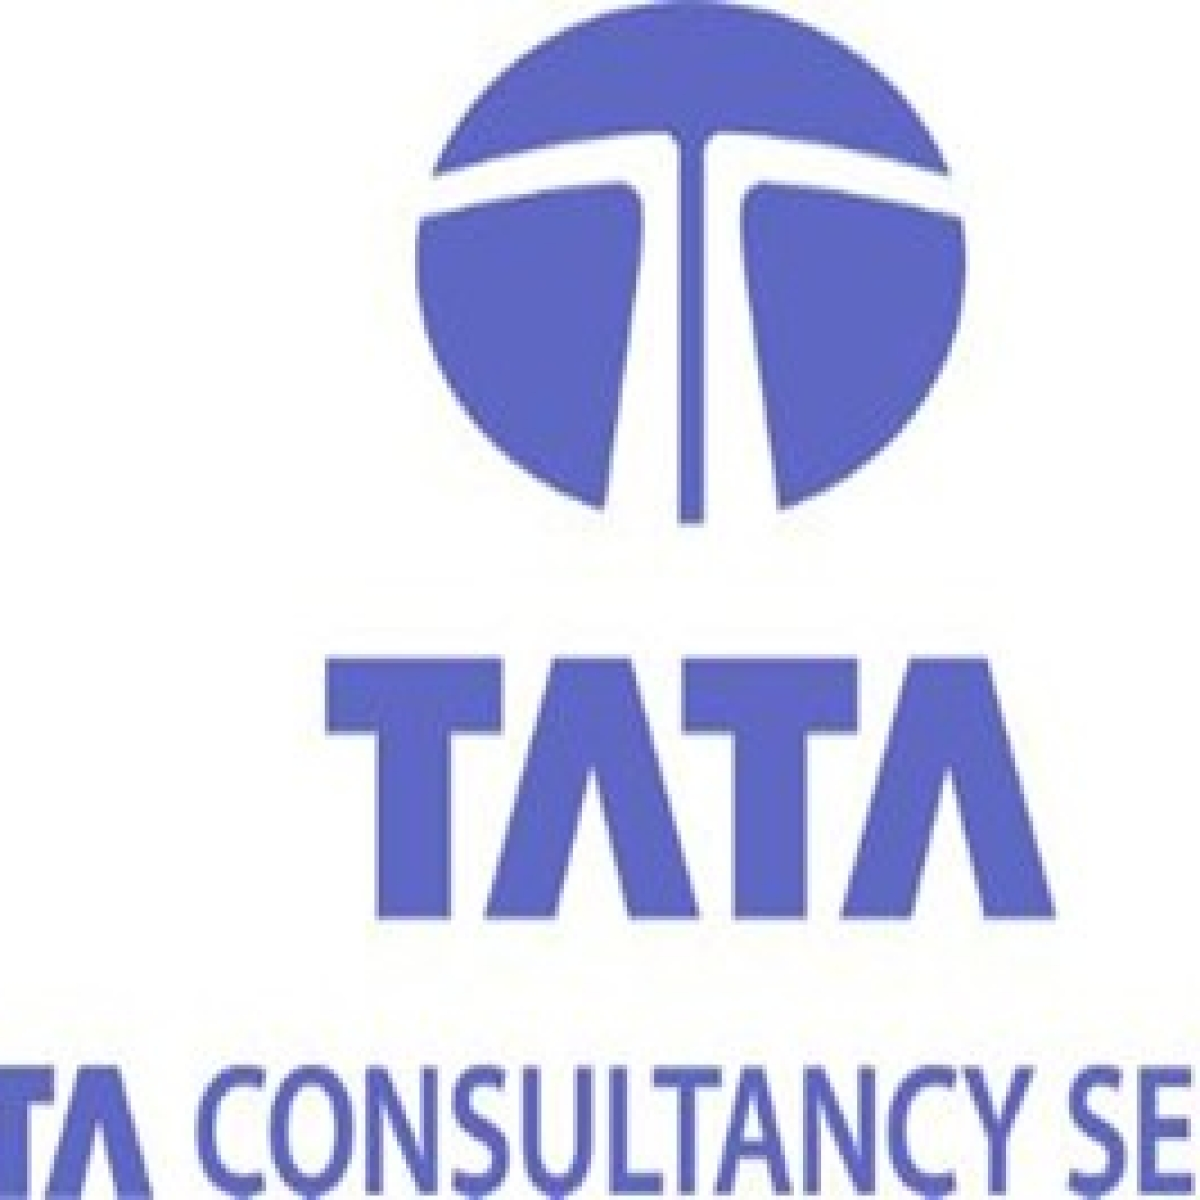 TCS shares decline over 4% after Q4 earnings